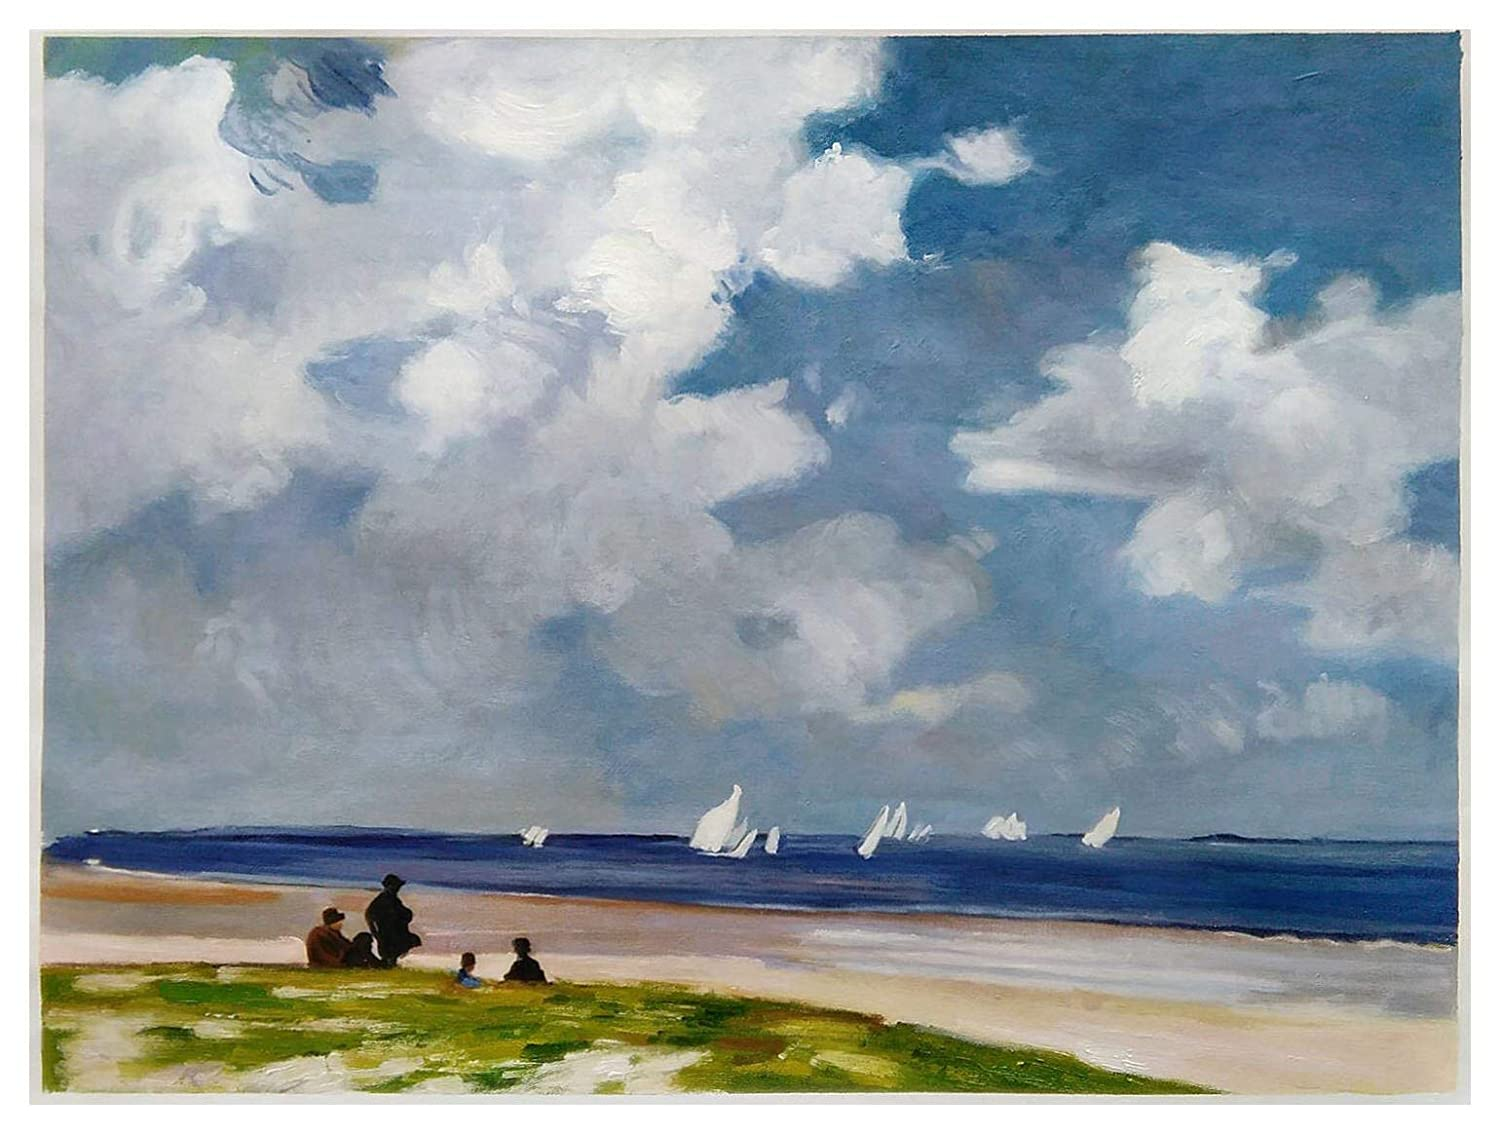 Sailboats off Far Rockaway Edward Potthast hand-painted oil painting reproduction,Sailing Boat on the Ocean,Beautiful Beach Landscape Art